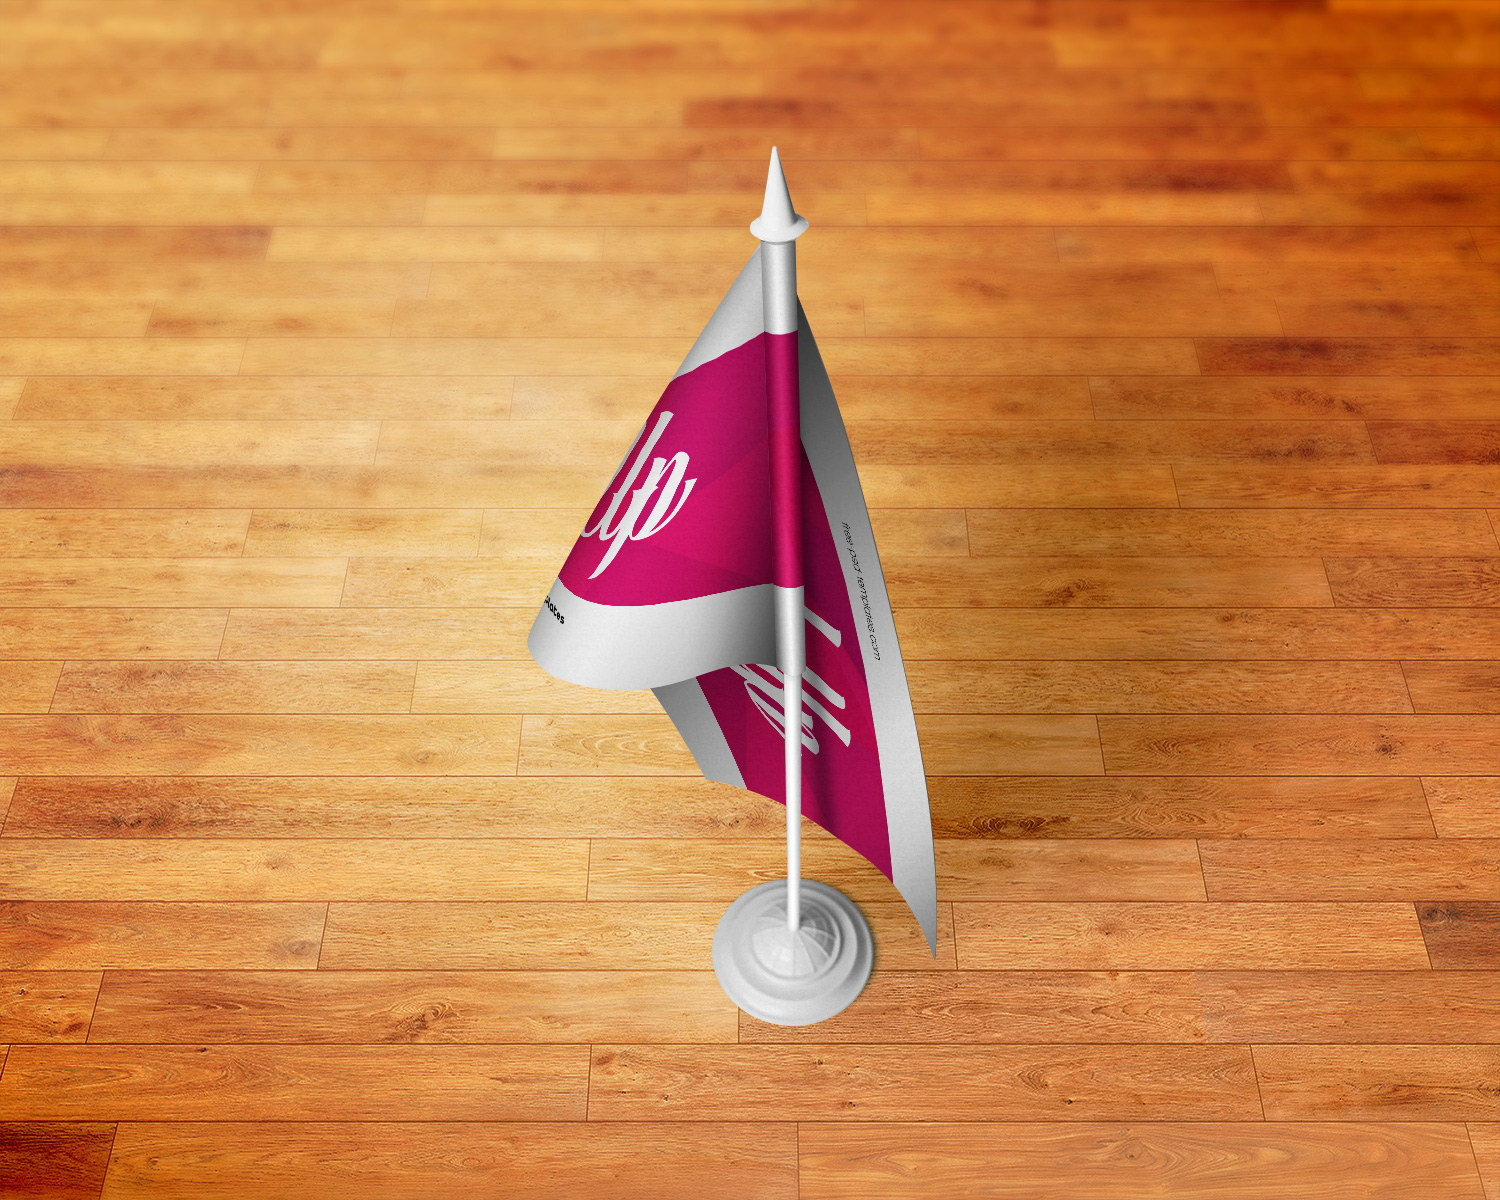 3-Desk-Flags-Free-PSD-Mockups-3